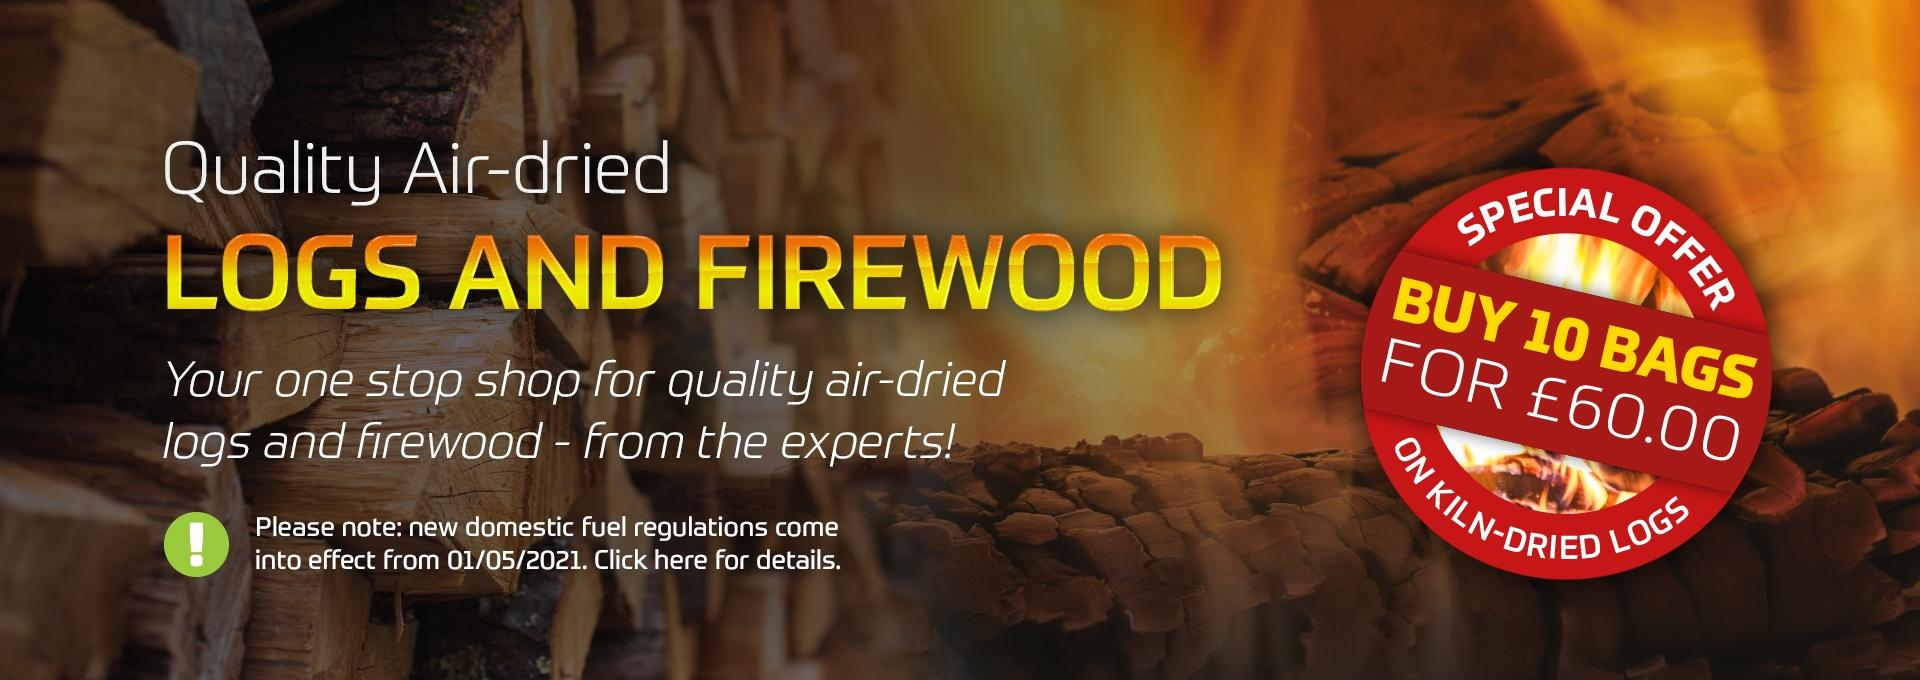 Quality air dried logs and firewood - Earnshaws